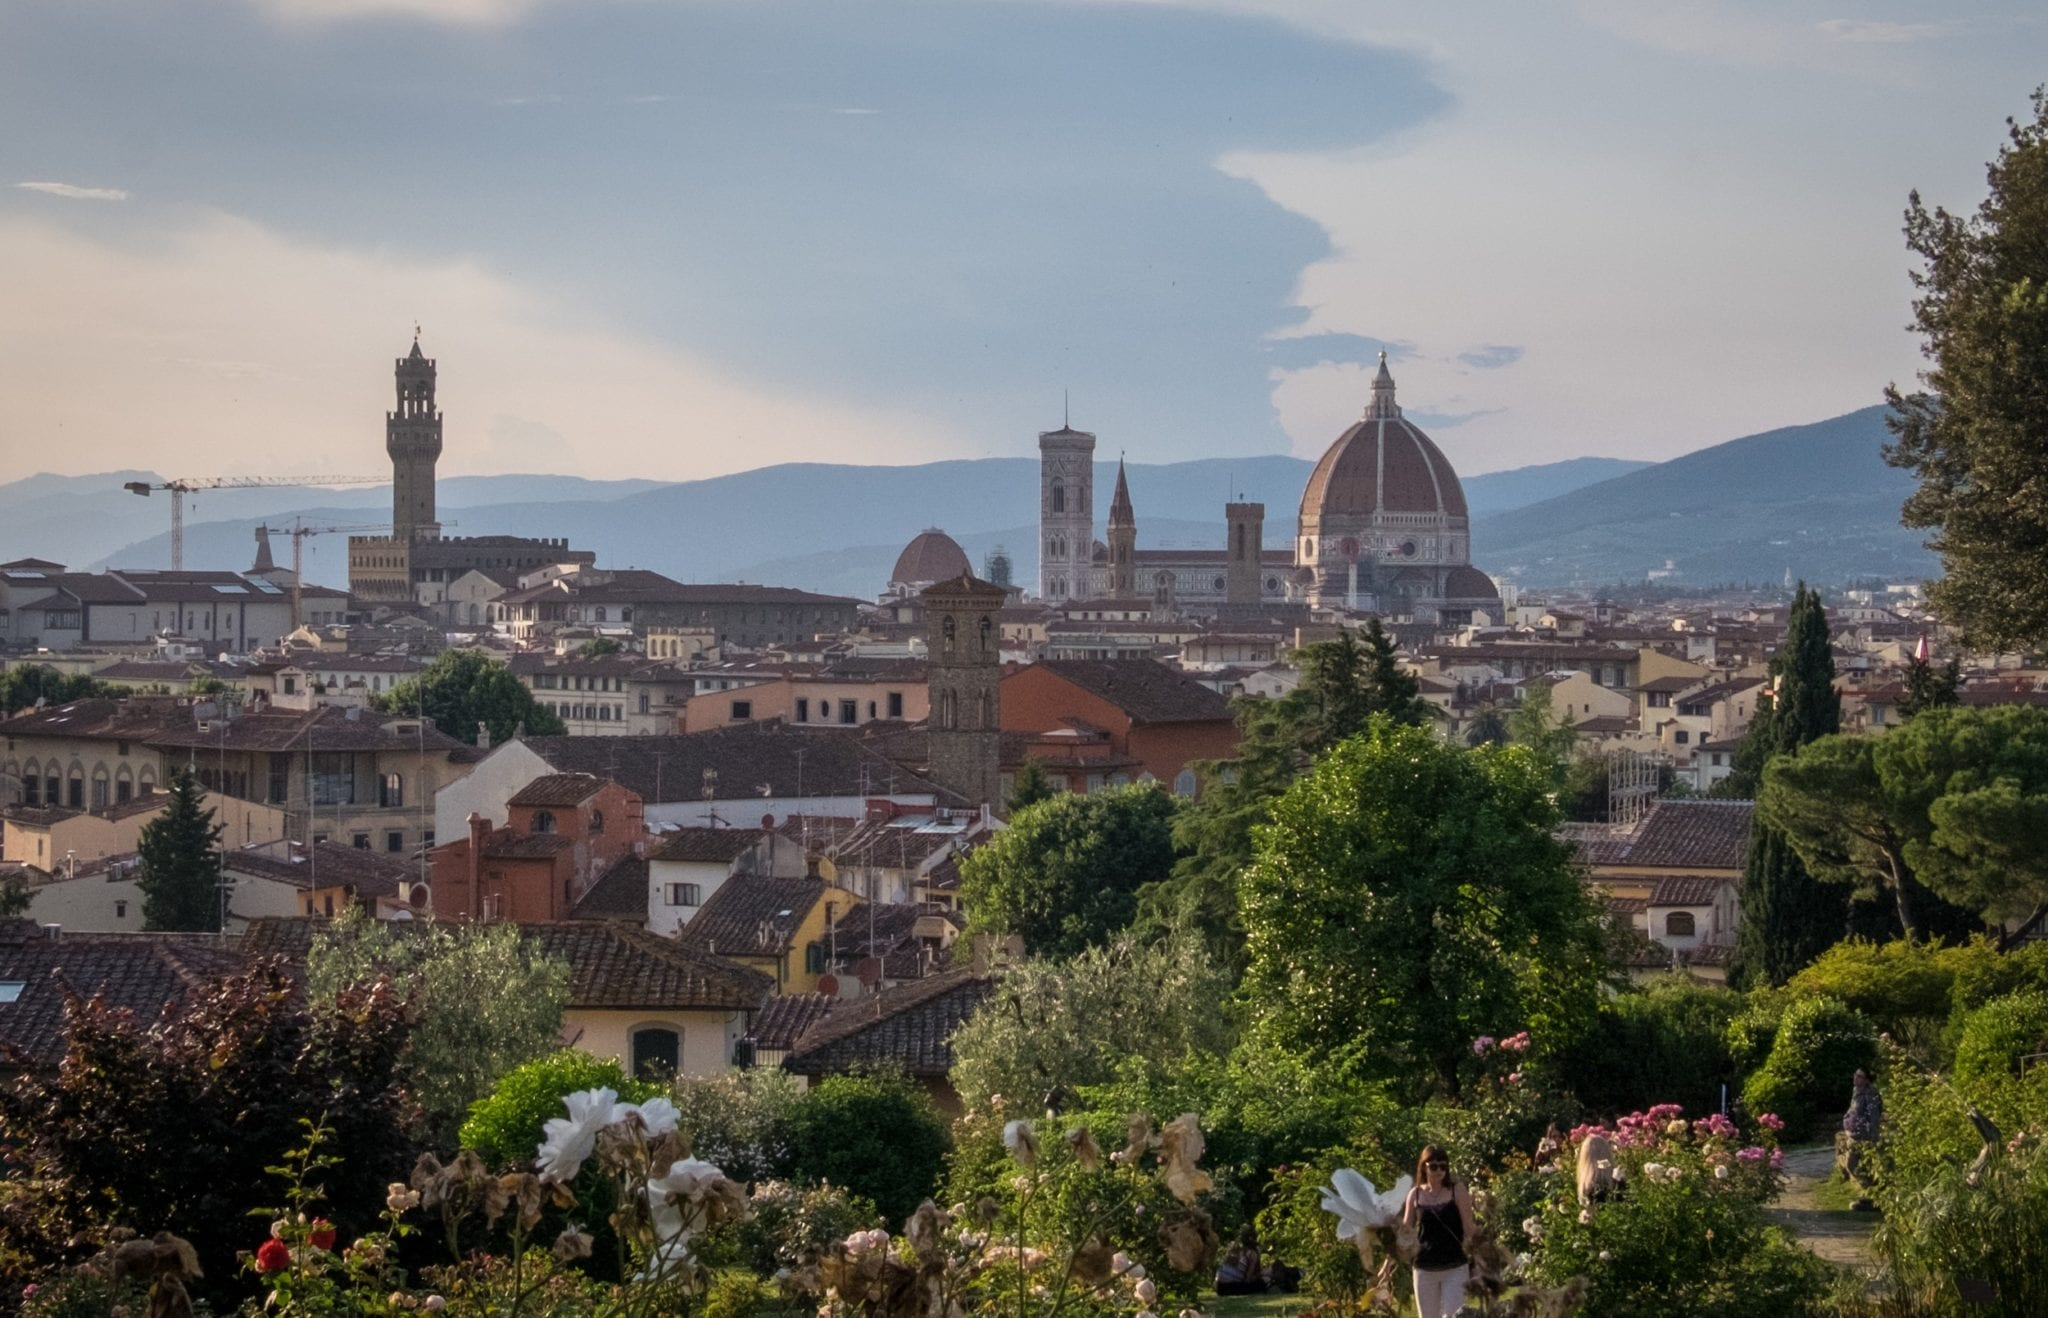 At dusk, Florence's Duomo and Palazzo Vecchio rise underneath a deepening blue sky and darker blue cloud. In the foreground are rose bushes from the rose garden.